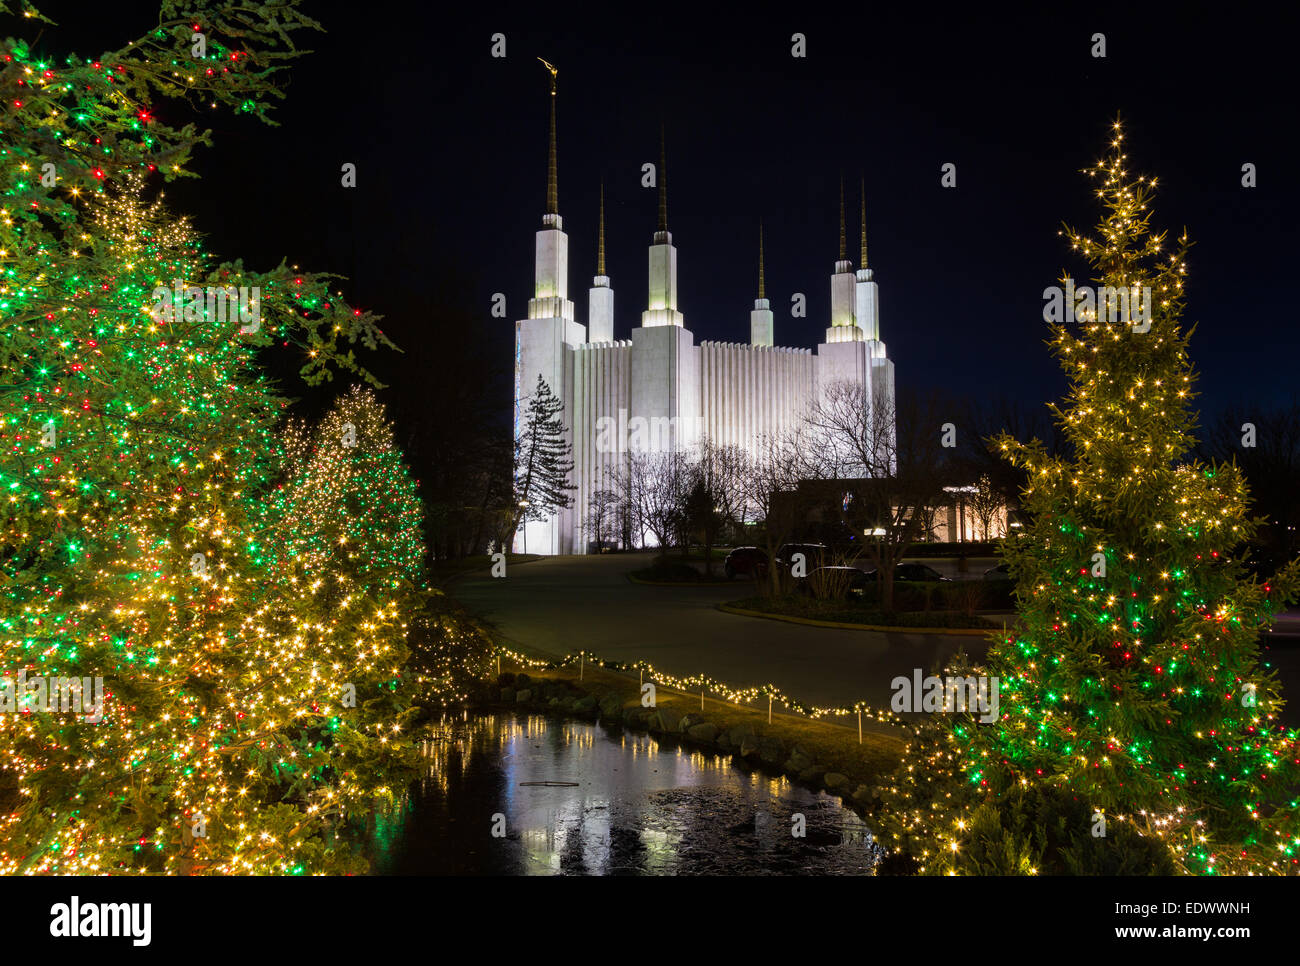 christmas lights at washington dc temple or church of jesus christ of latter day saints in kensington maryland usa - Christmas Lights Maryland